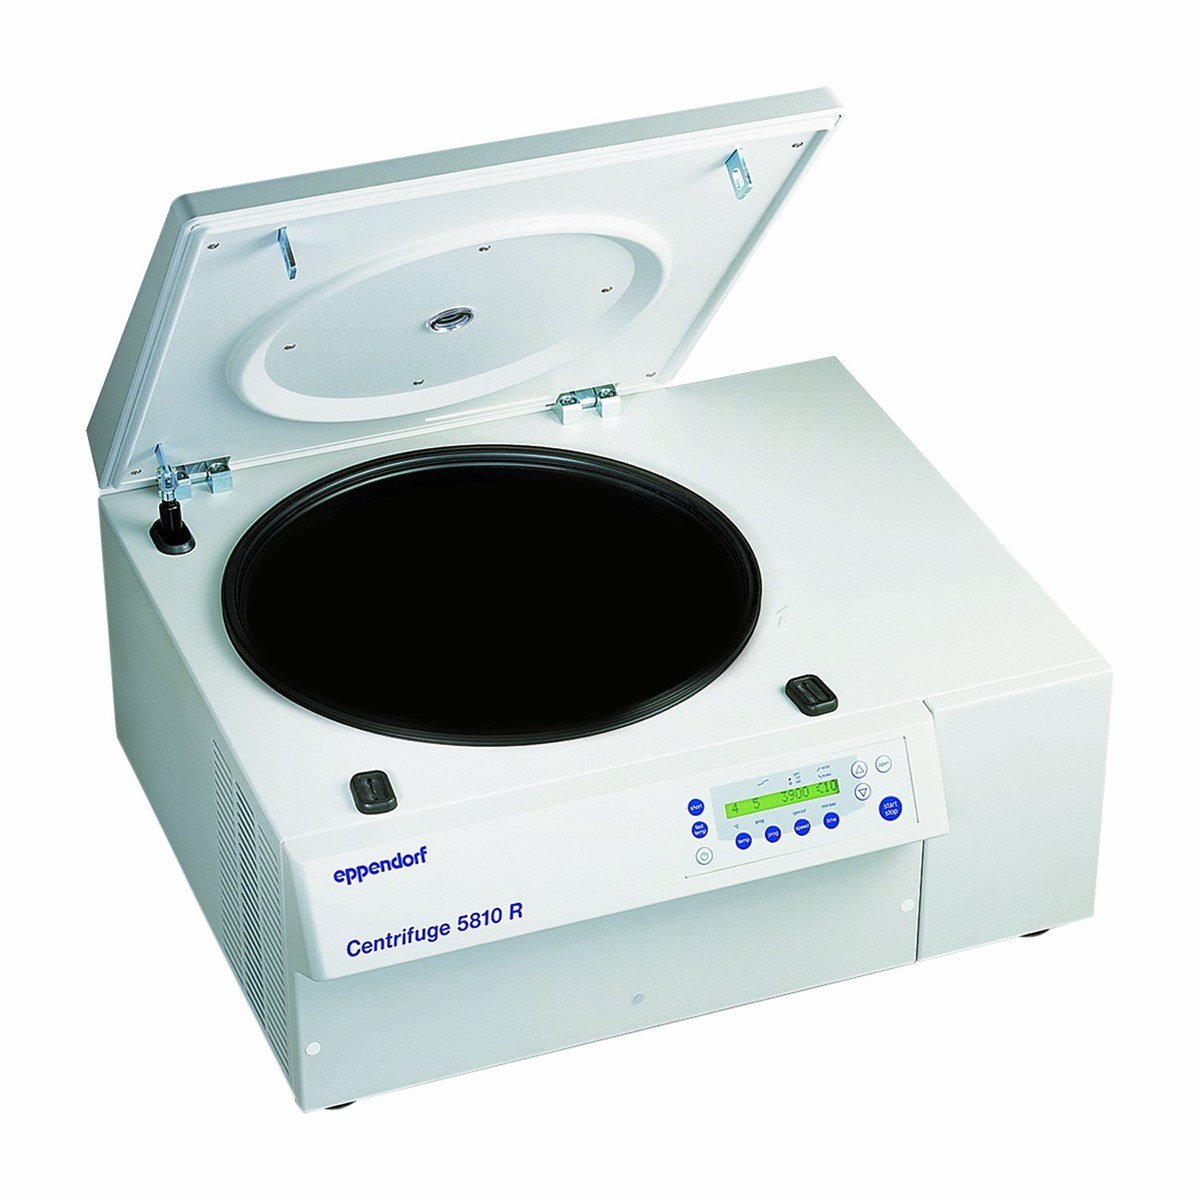 Eppendorf 5810 R Multi-Purpose Variable-Speed Refrigerated Centrifuge